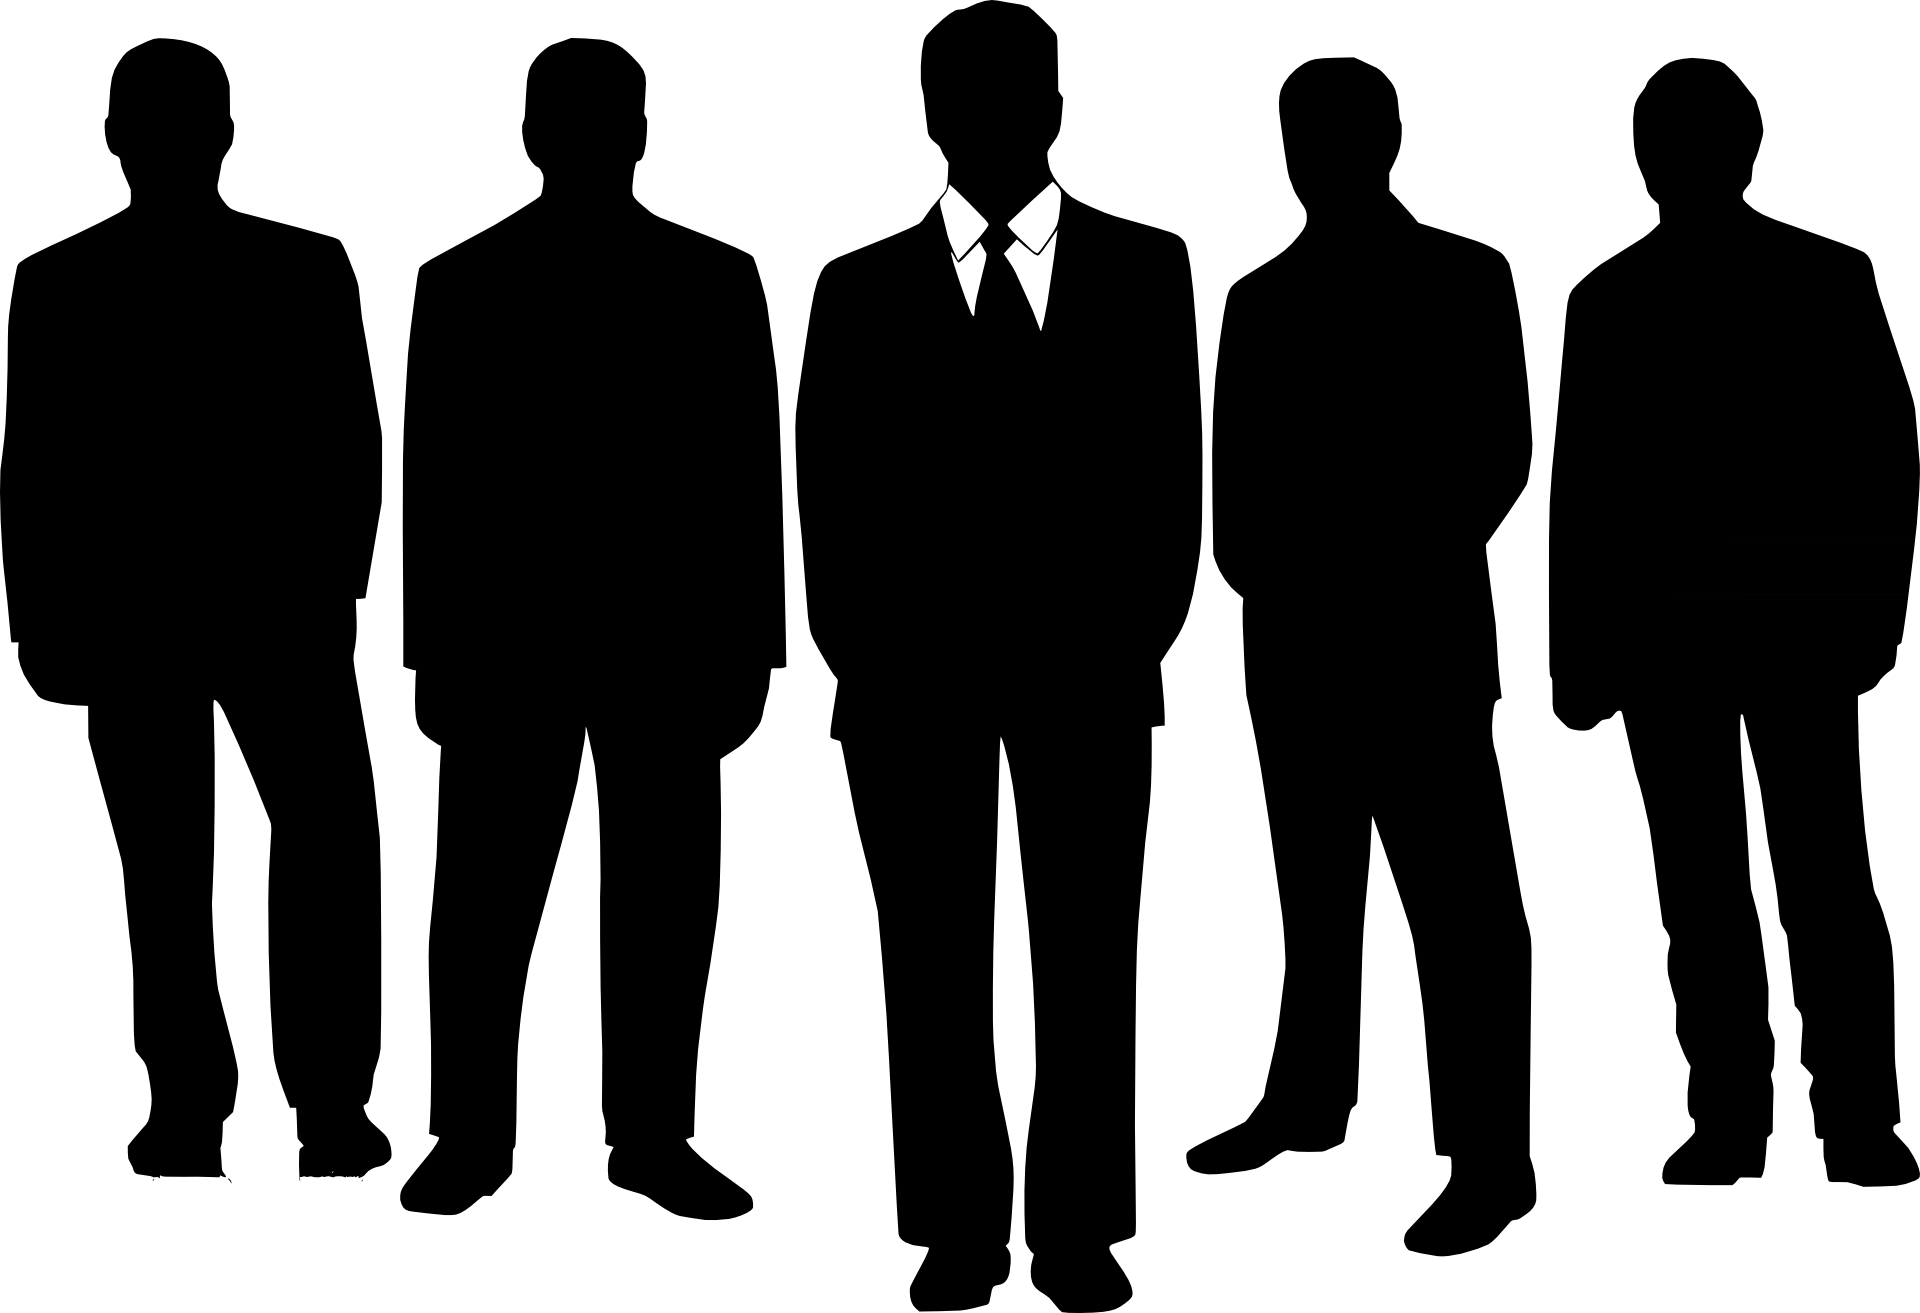 Free Businessman Silhouette Png, Download Free Clip Art.